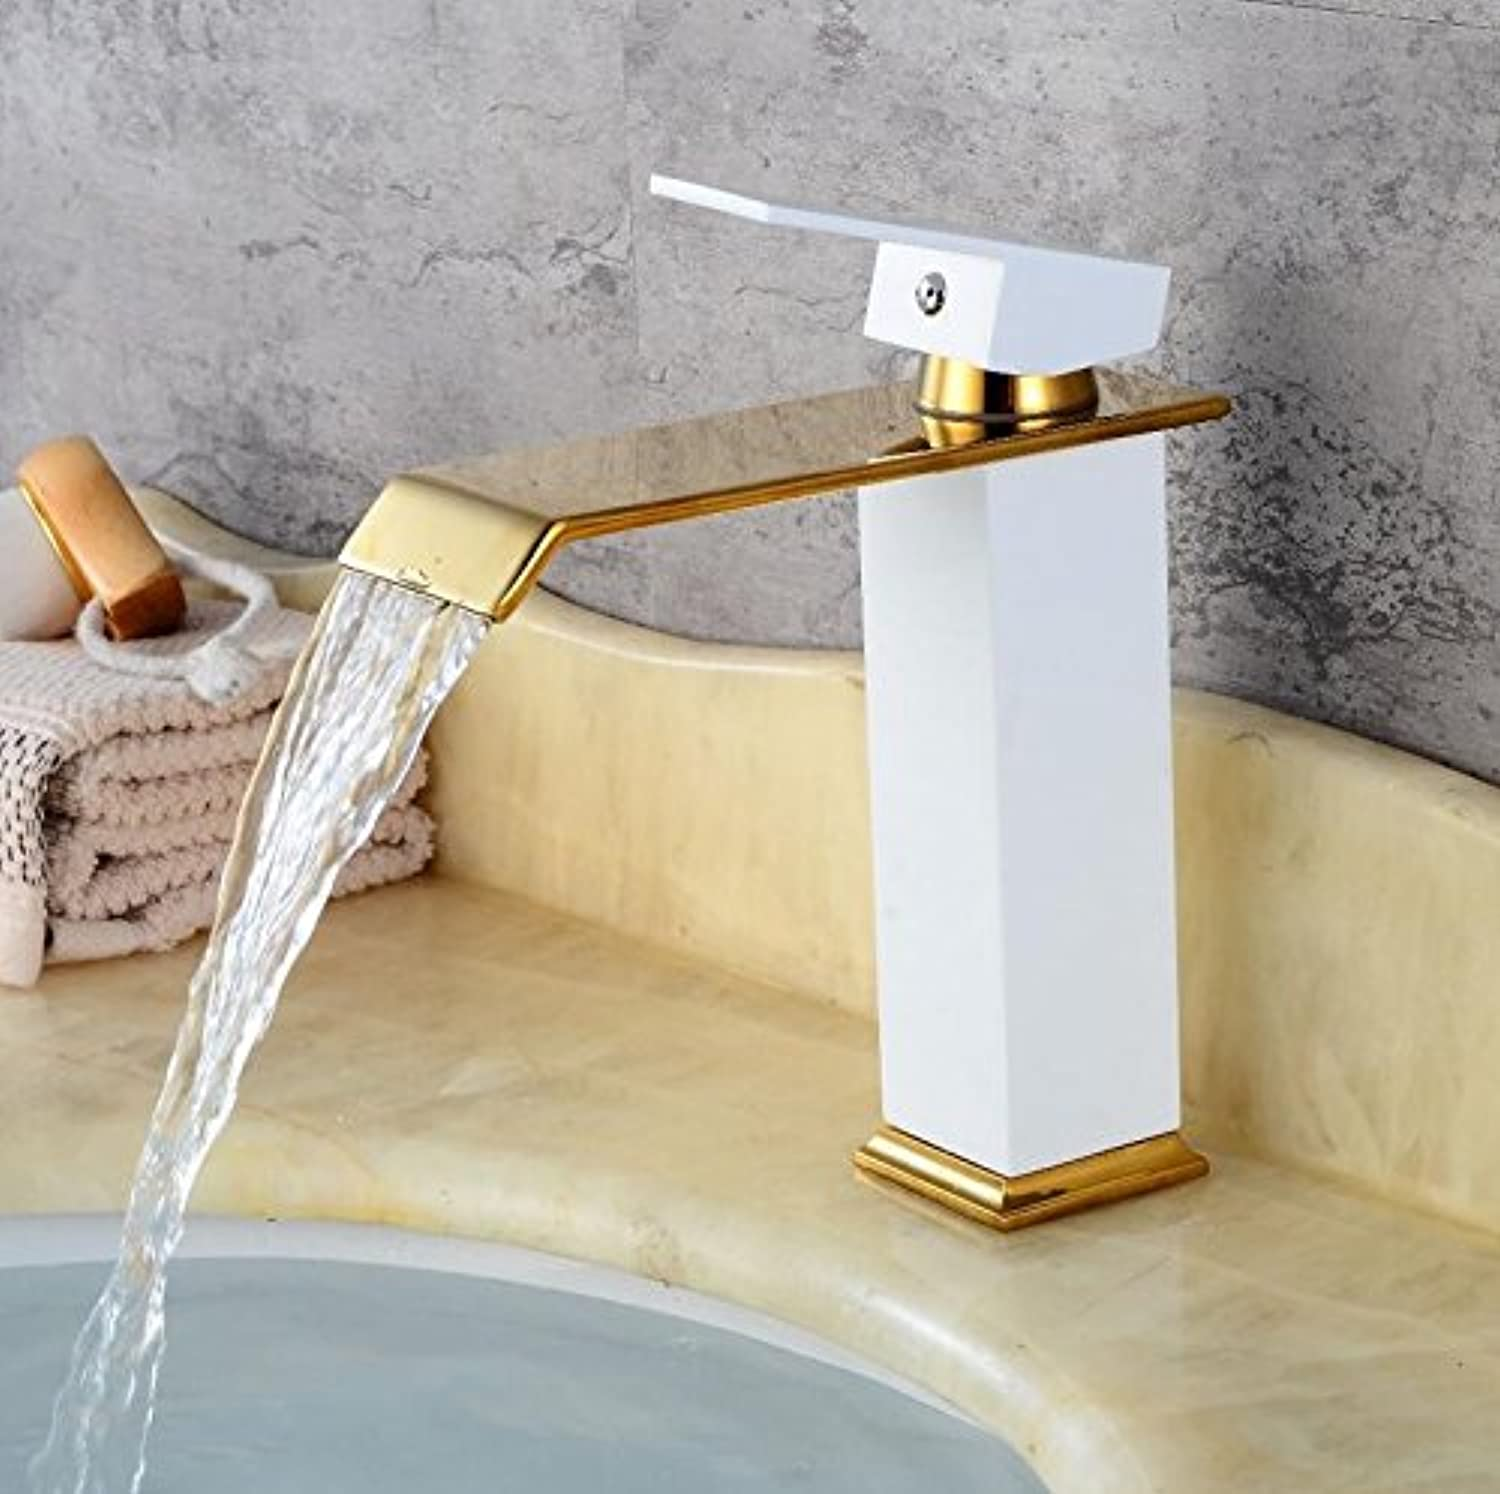 Mkkwp Waterfall Fashion Style Home Multi-color Bath Basin Faucet Cold and Hot Taps Bathroom Mixer